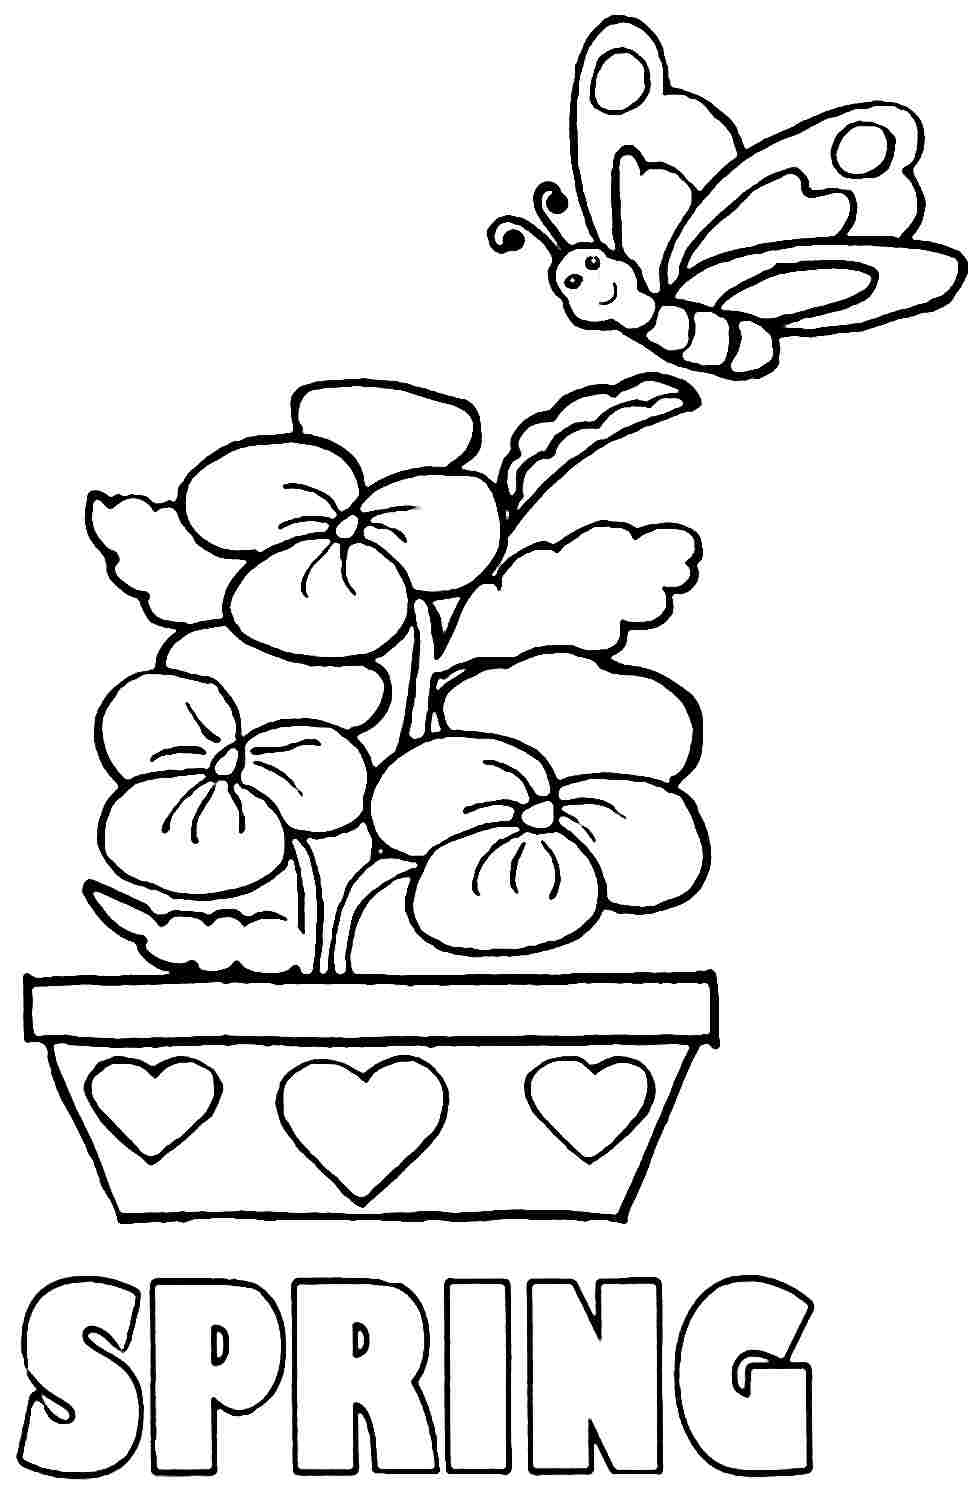 spring coloring pages for kids spring coloring pages best coloring pages for kids for coloring spring pages kids